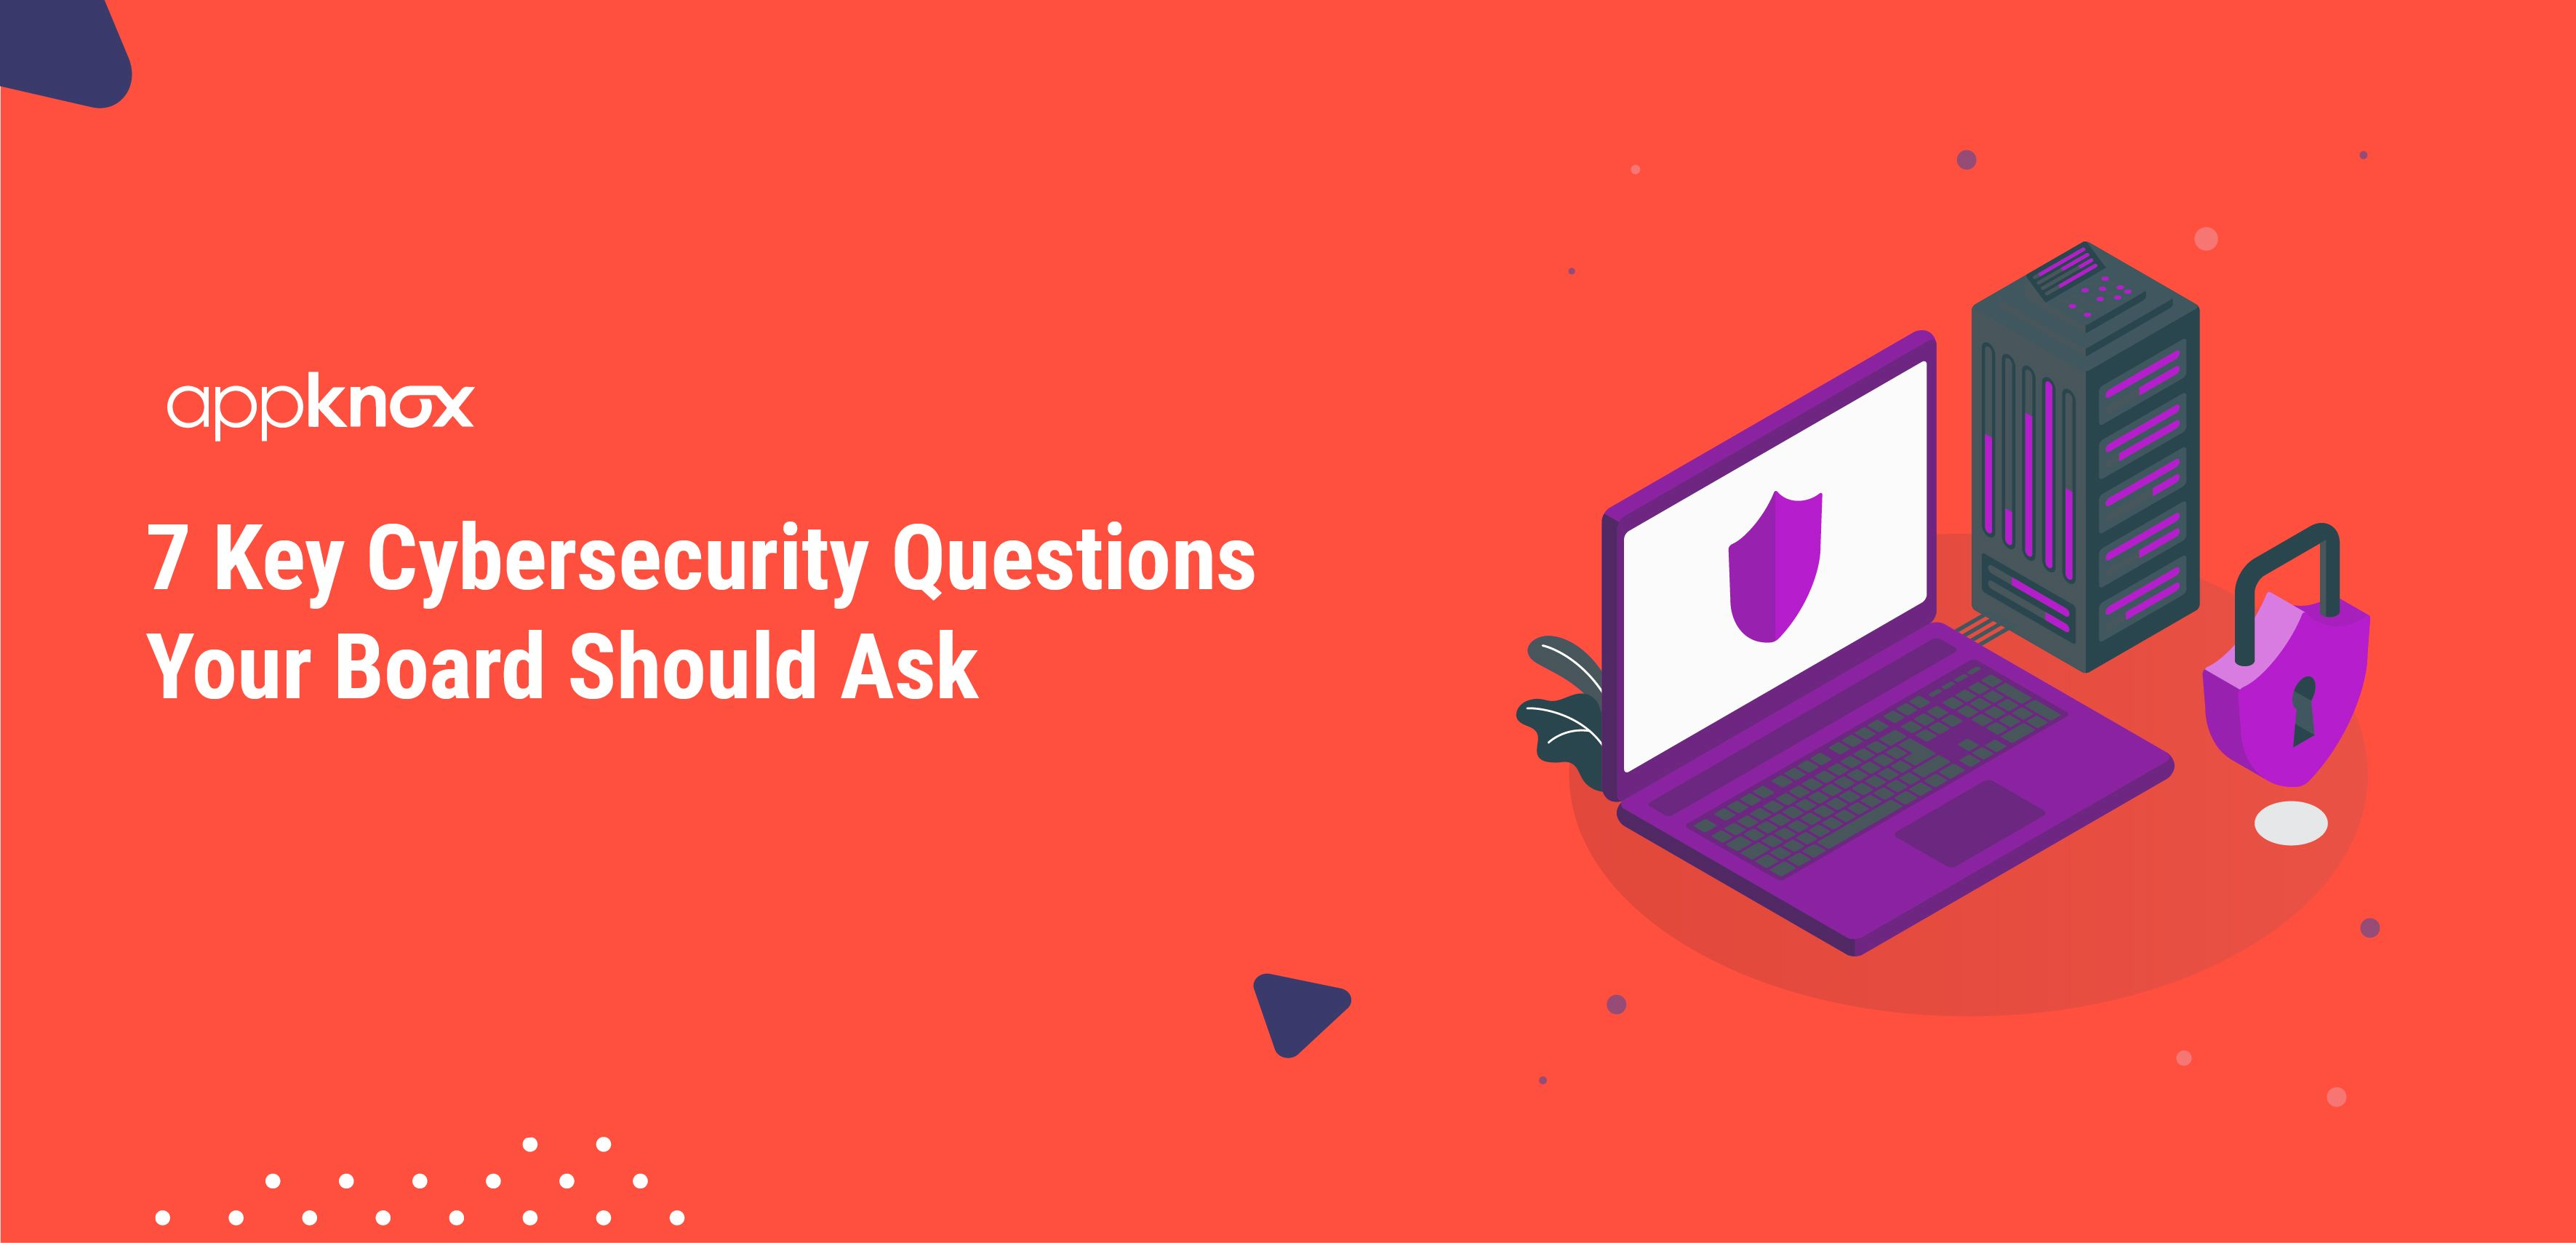 7 Key Cybersecurity Questions Your Board Should Ask